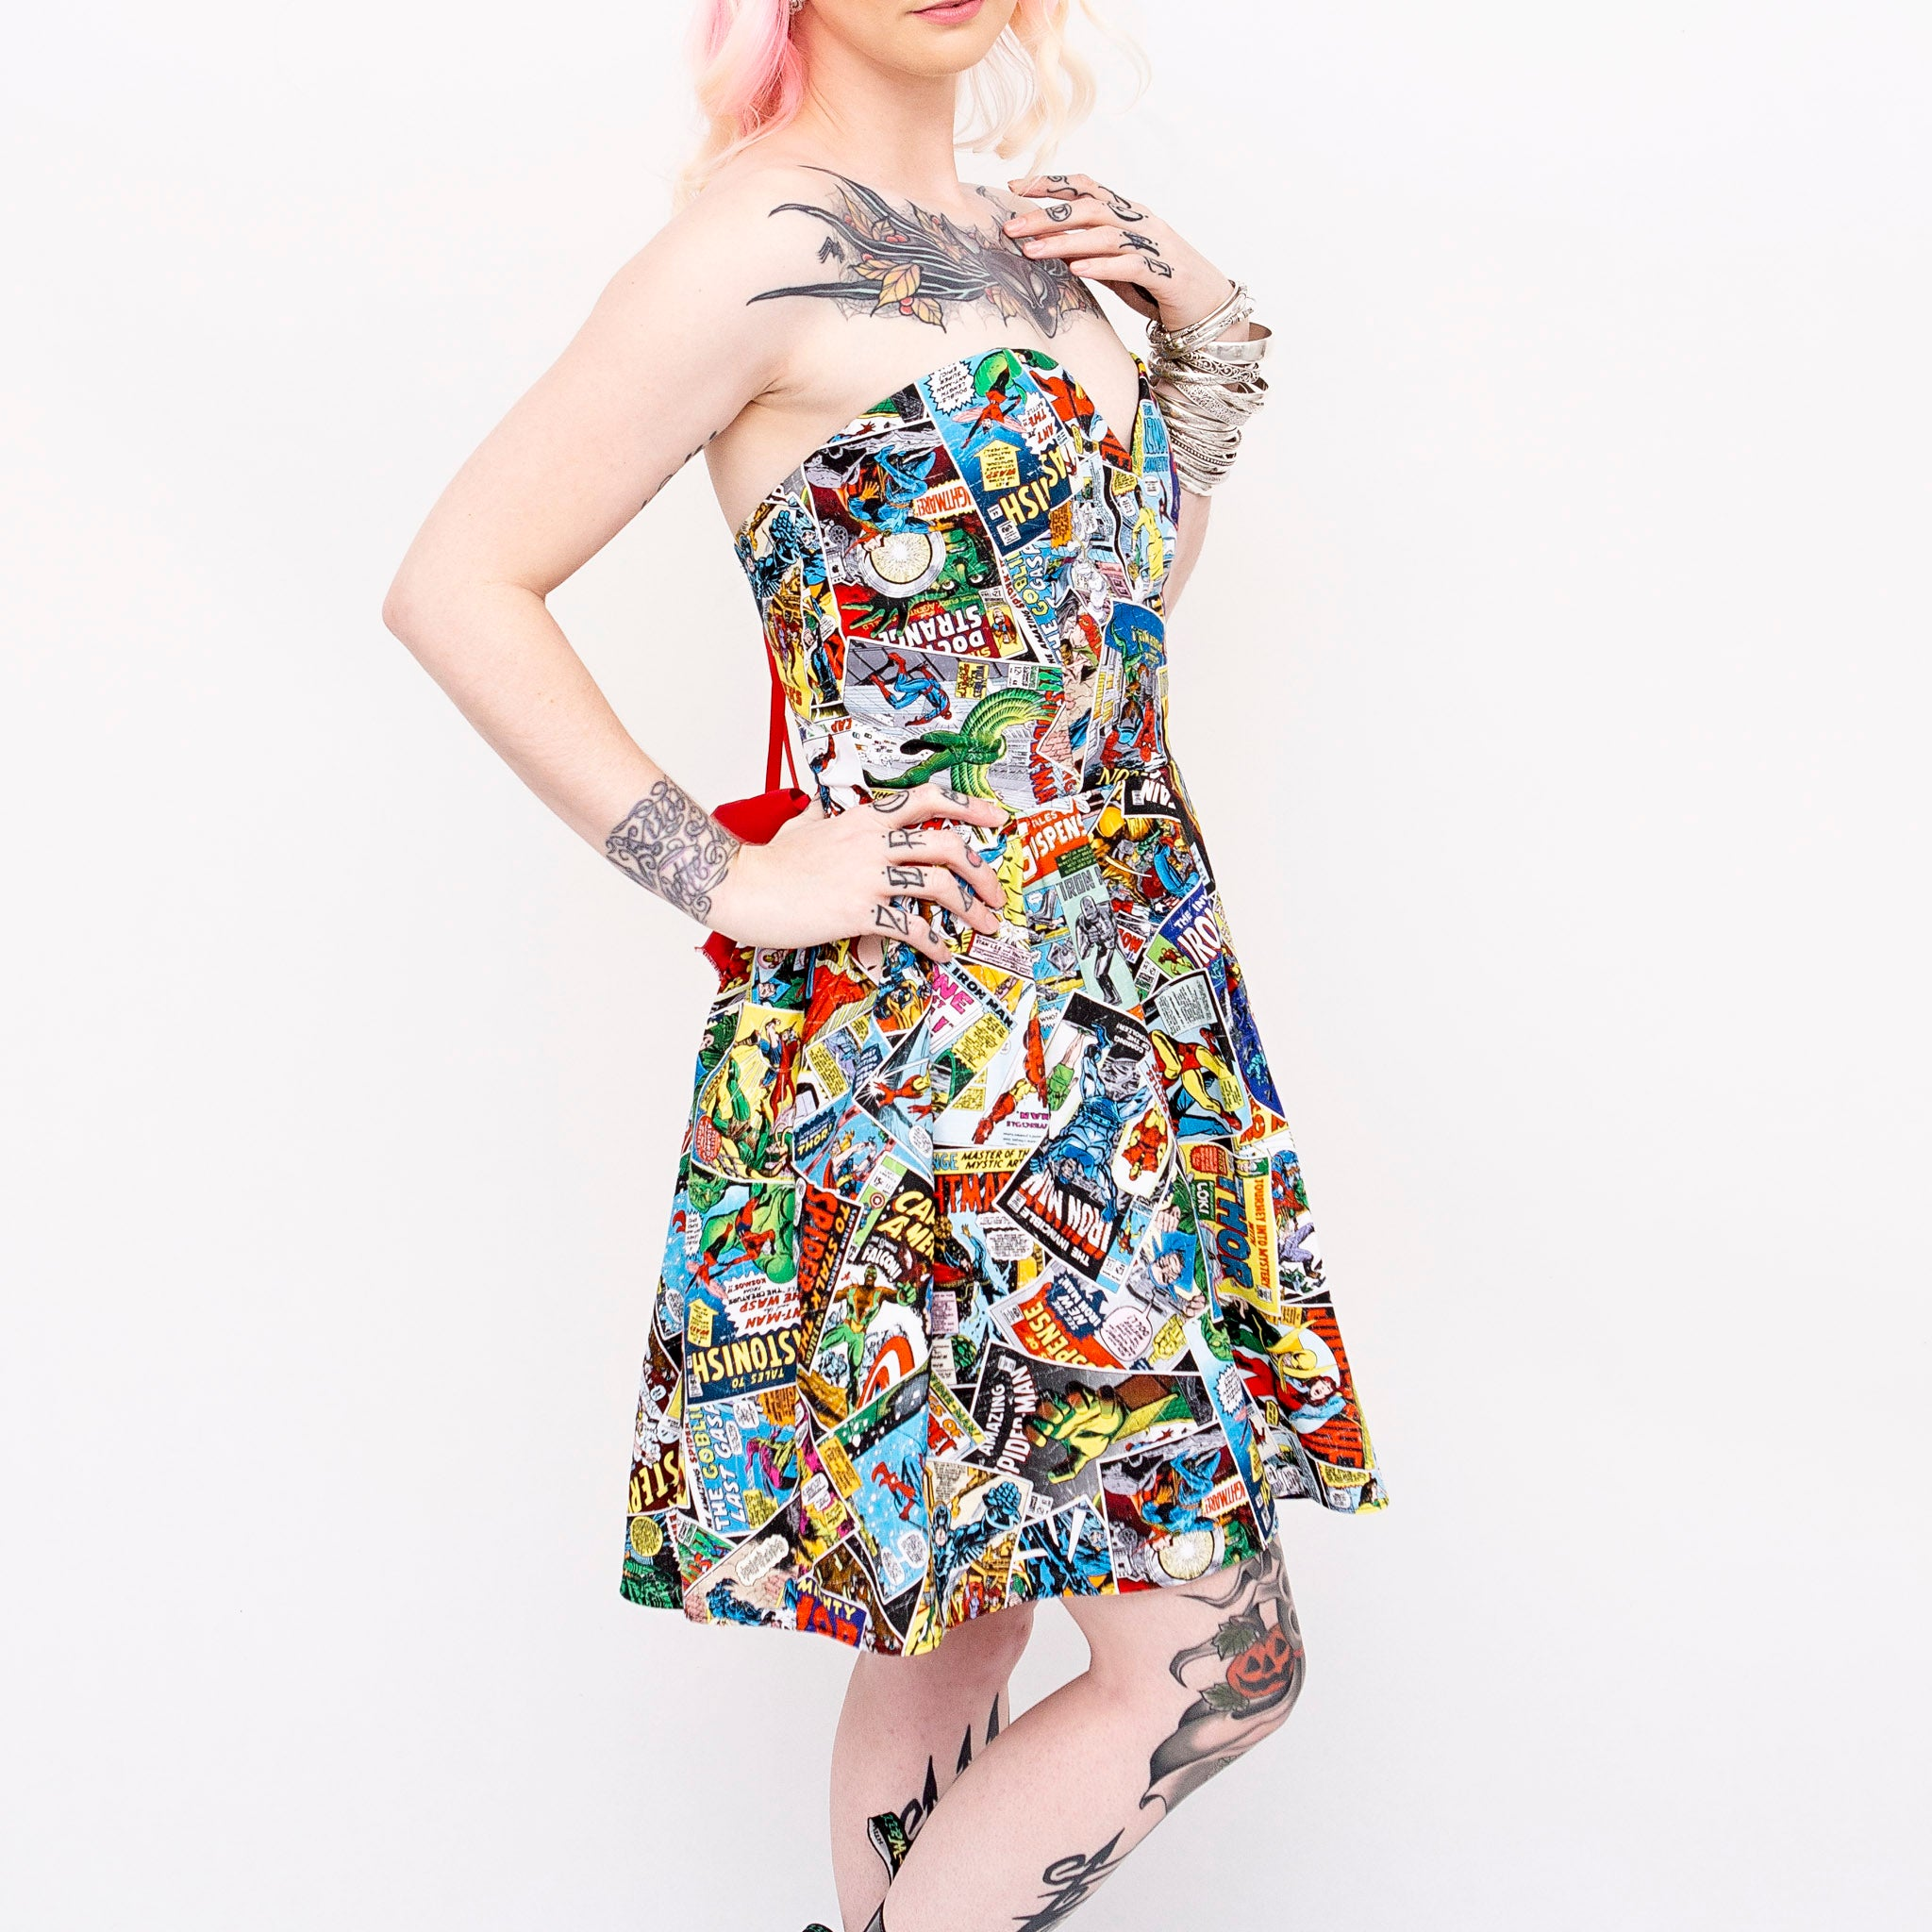 Marvel Superhero Comic Sweetheart Dress